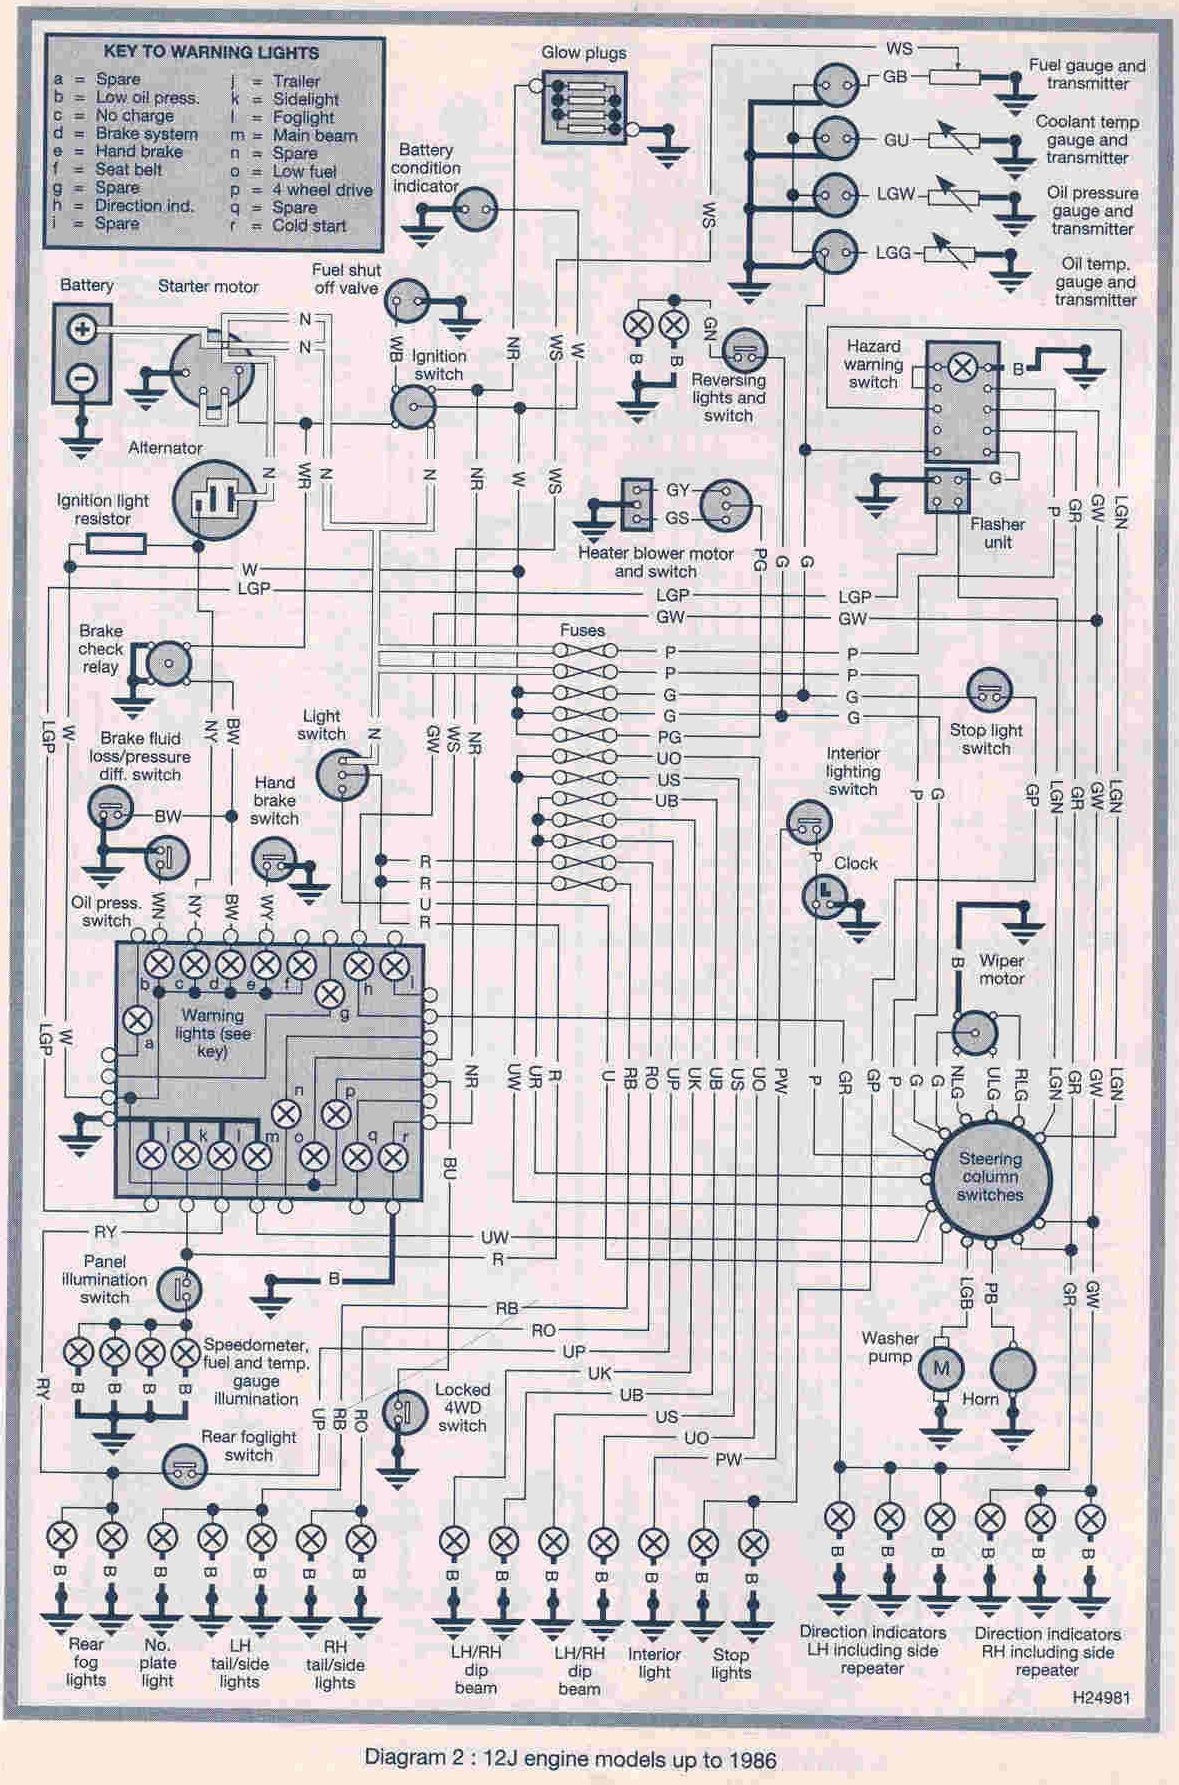 help requested with 1990 v8 wiring loom diagrams defender forum rh forums  lr4x4 com land rover defender indicator wiring diagram land rover defender  ...